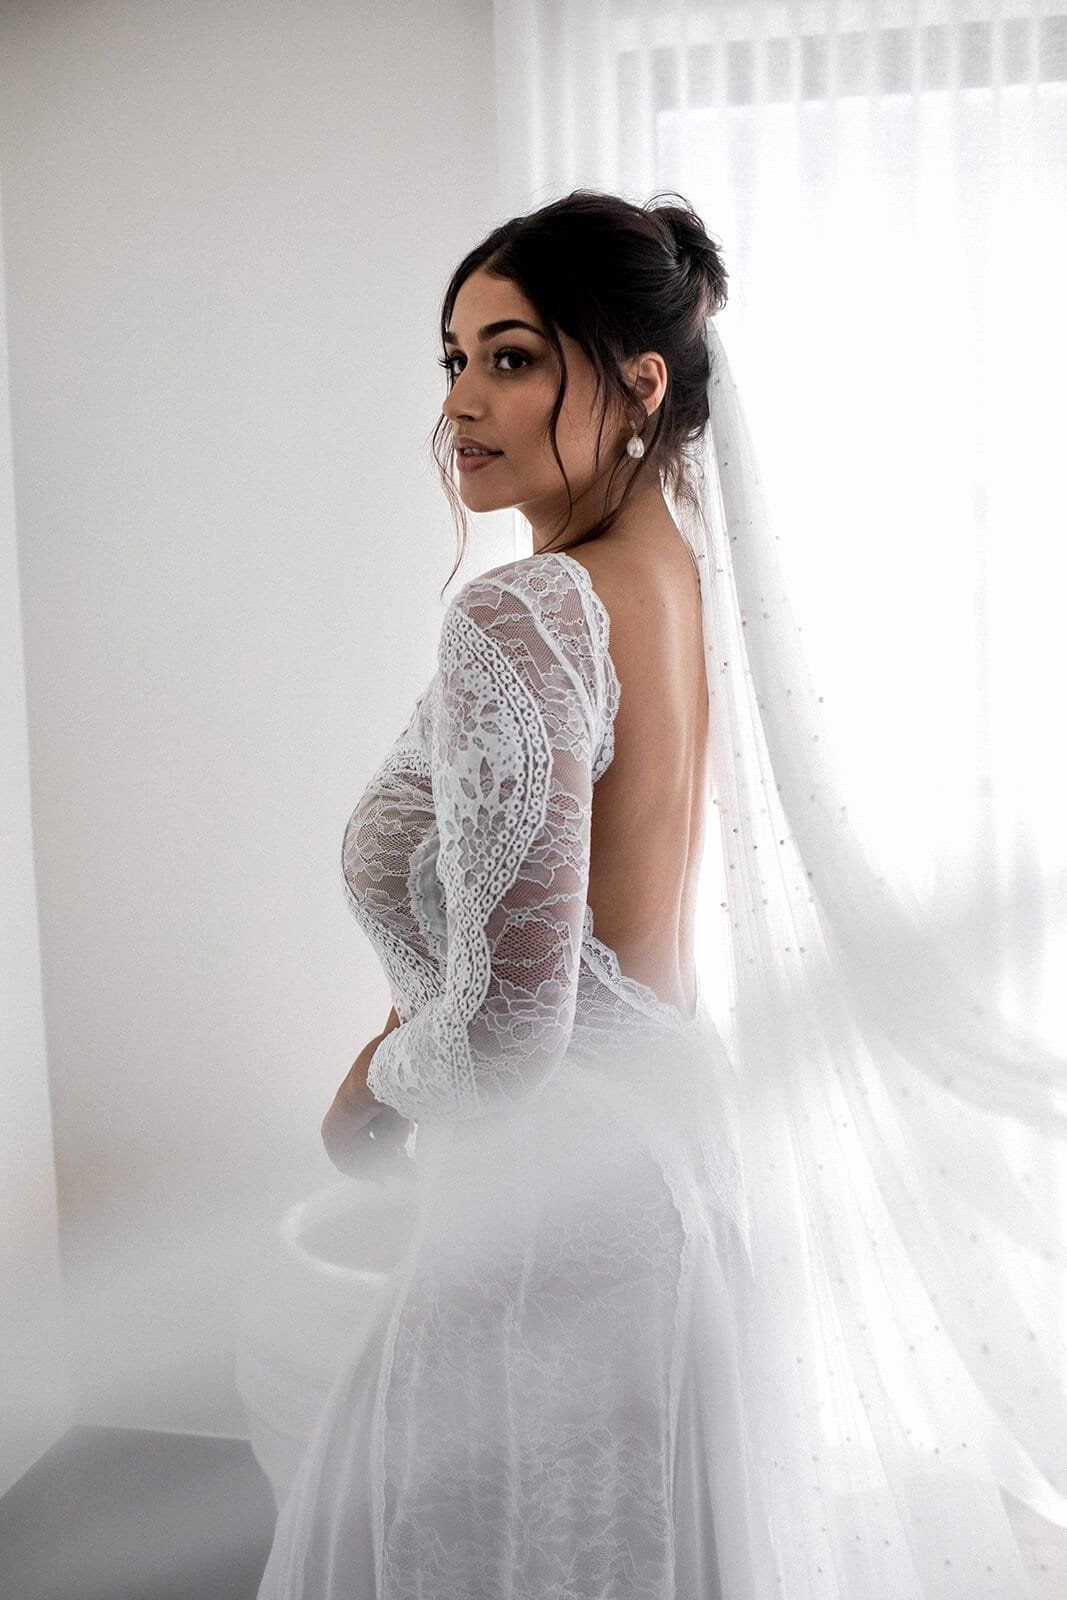 Average Cost Of Wedding Dress Alterations Luxury Inca In 2020 With Images Wedding Dresses Wedding Dress Hire Wedding Dress Sample Sale,Wedding Dress Template For Card Making